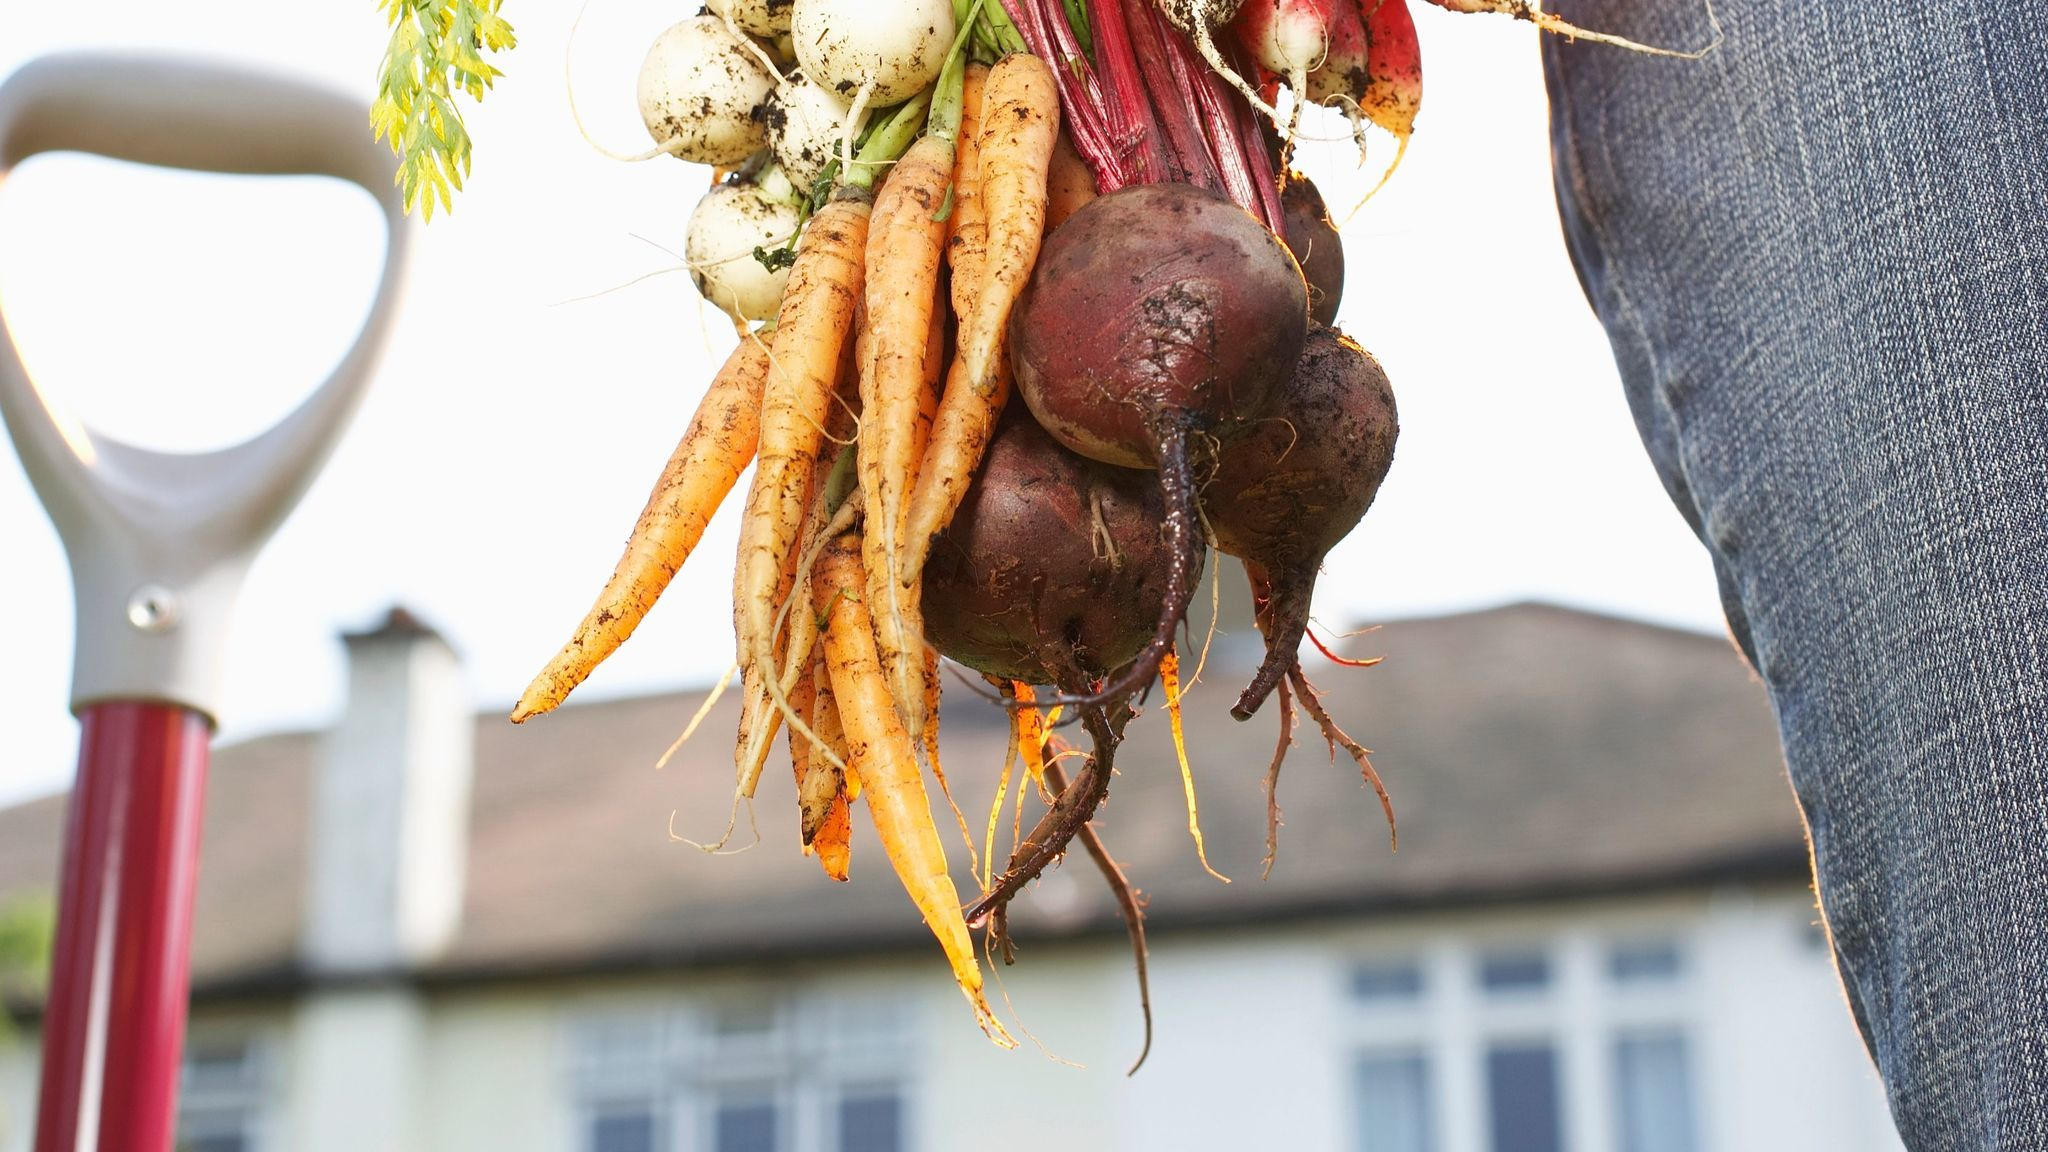 Carrots and beets.